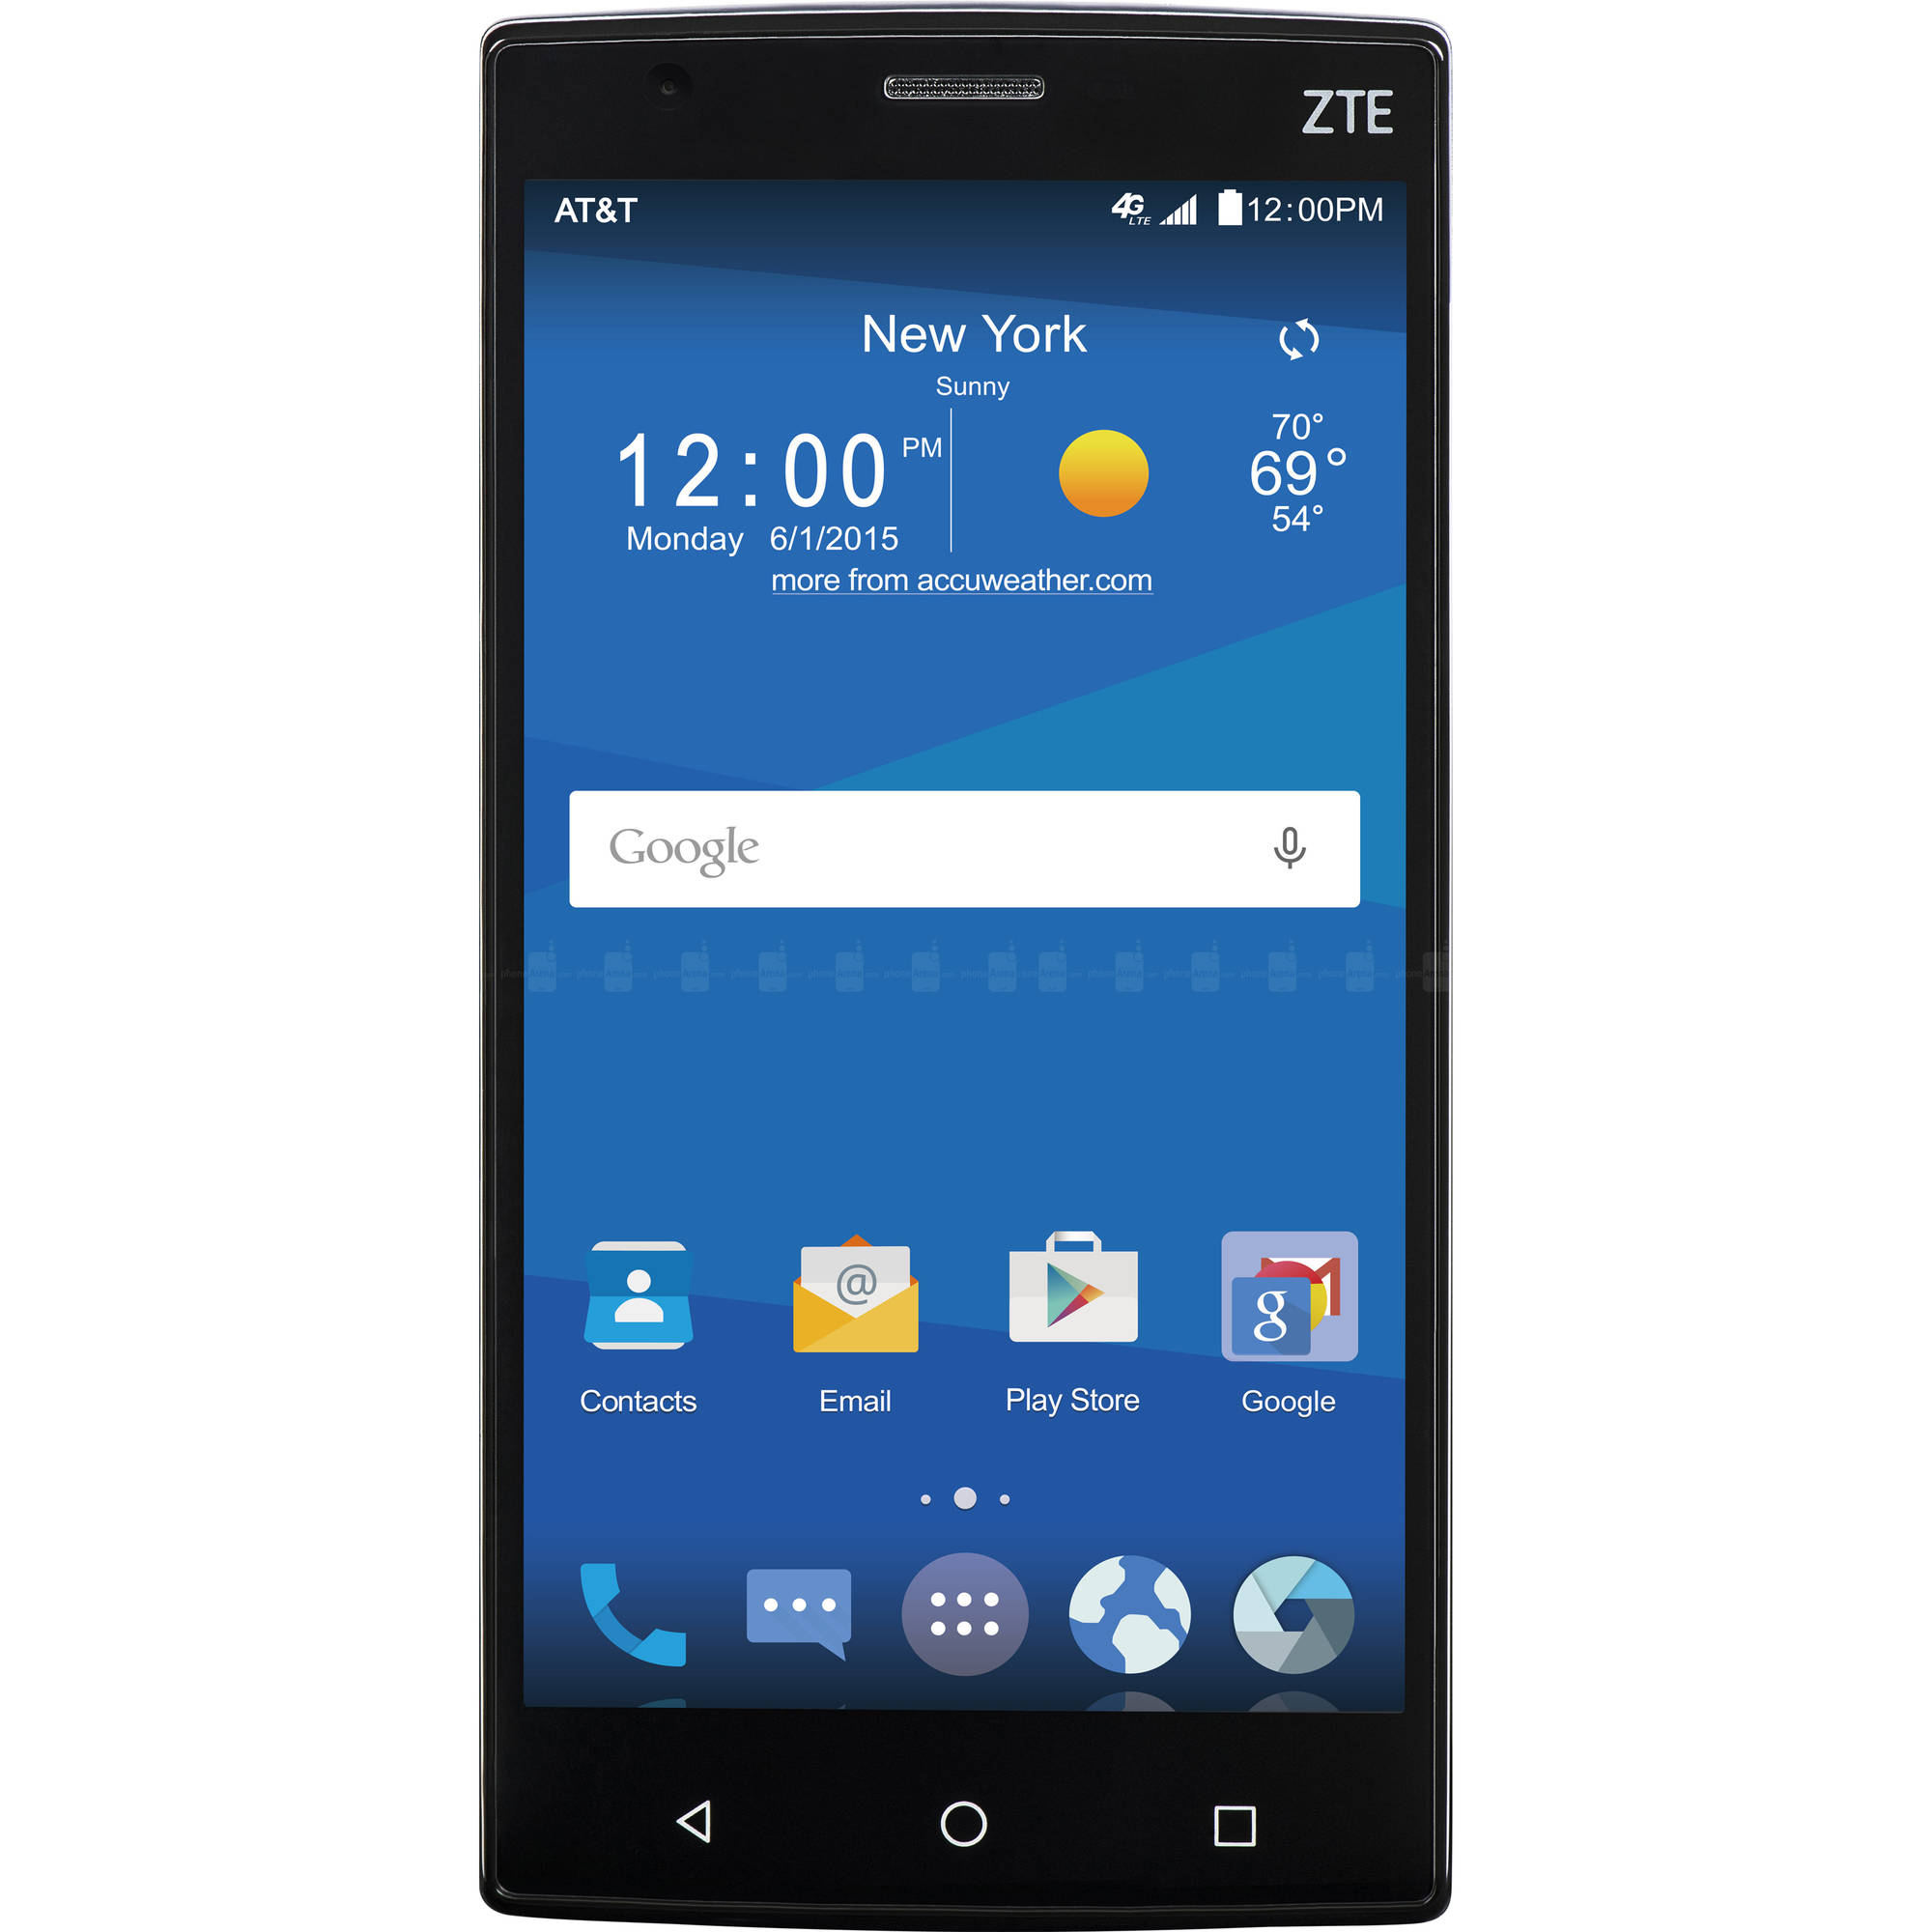 can shoot zte zmax 2 unlocked appreciate your